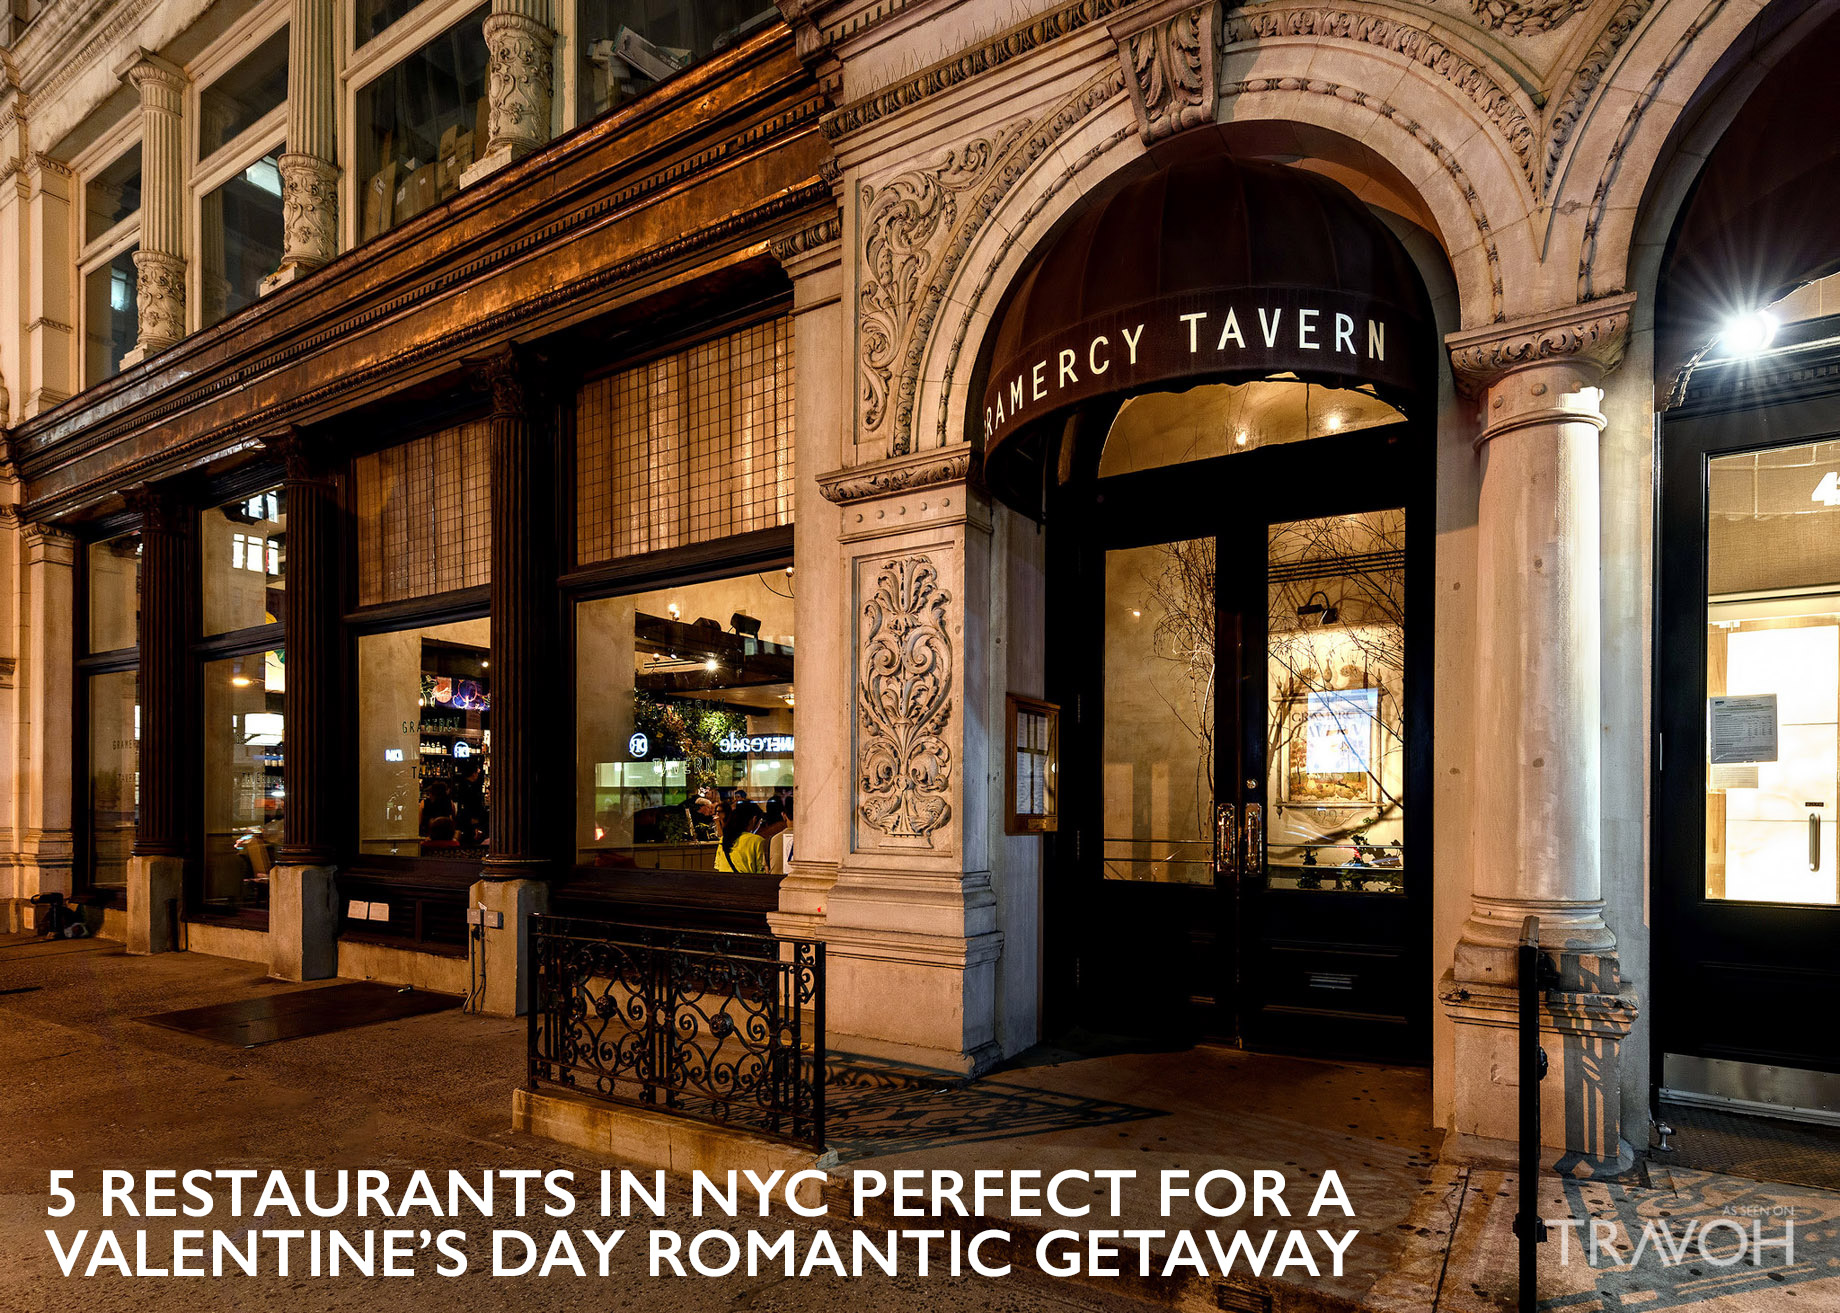 5 Restaurants in NYC Perfect for a Valentine's Day Romantic Getaway